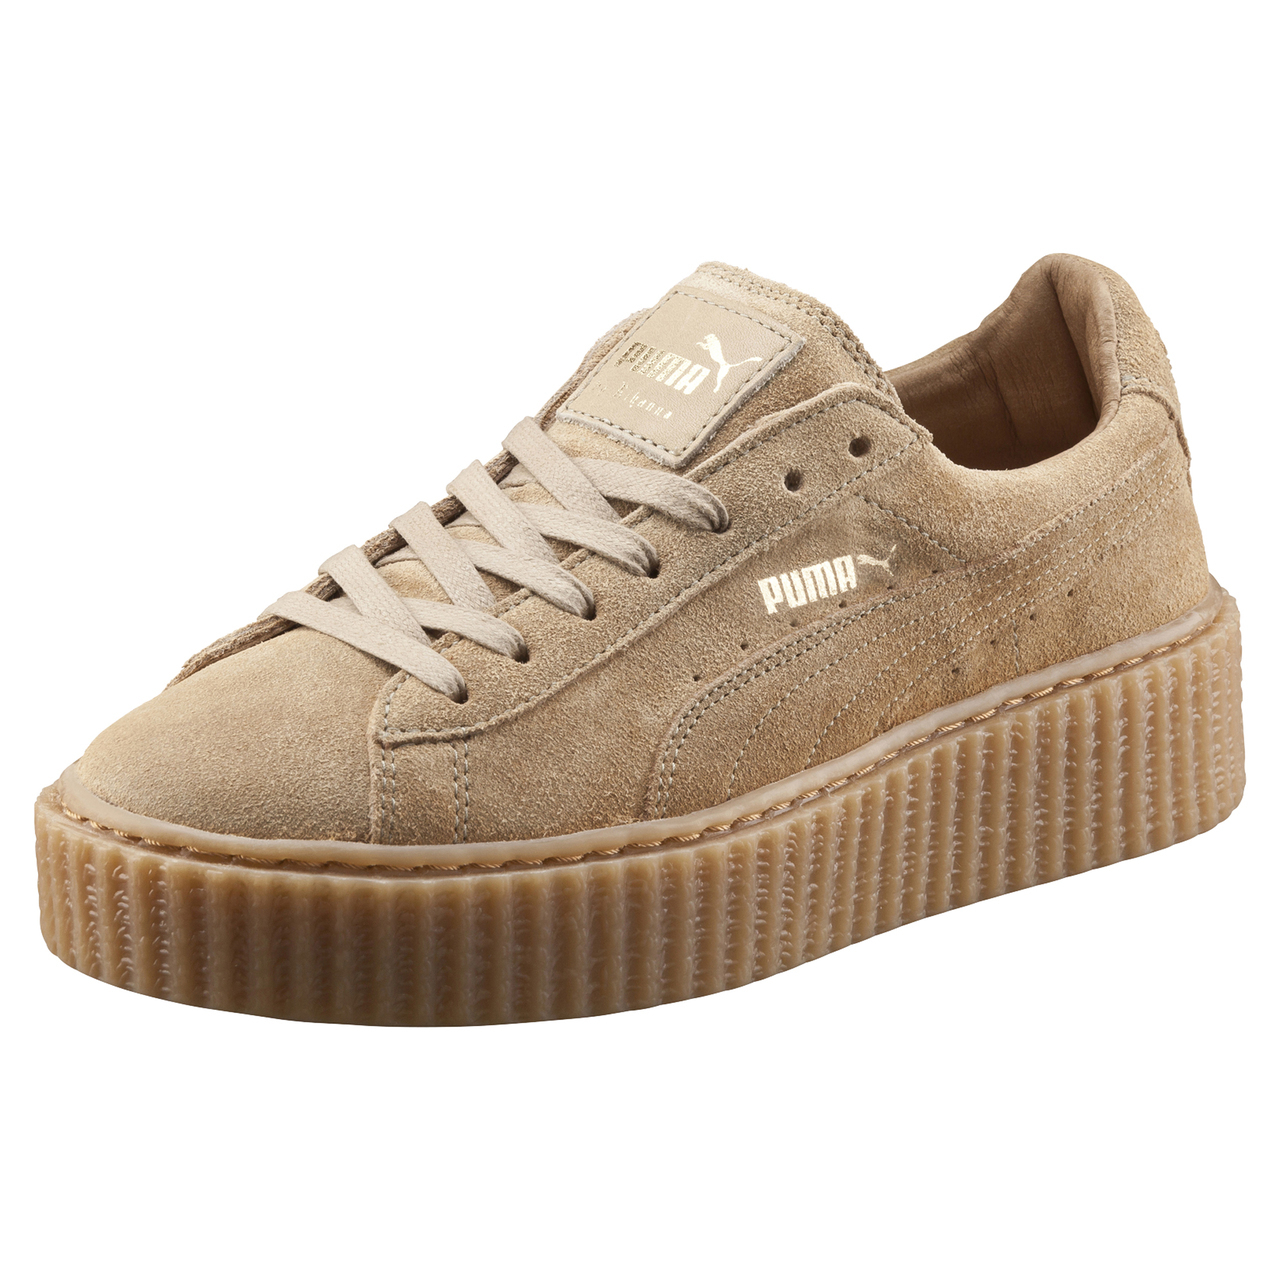 lyst puma x rihanna suede creepers oatmeal in natural. Black Bedroom Furniture Sets. Home Design Ideas